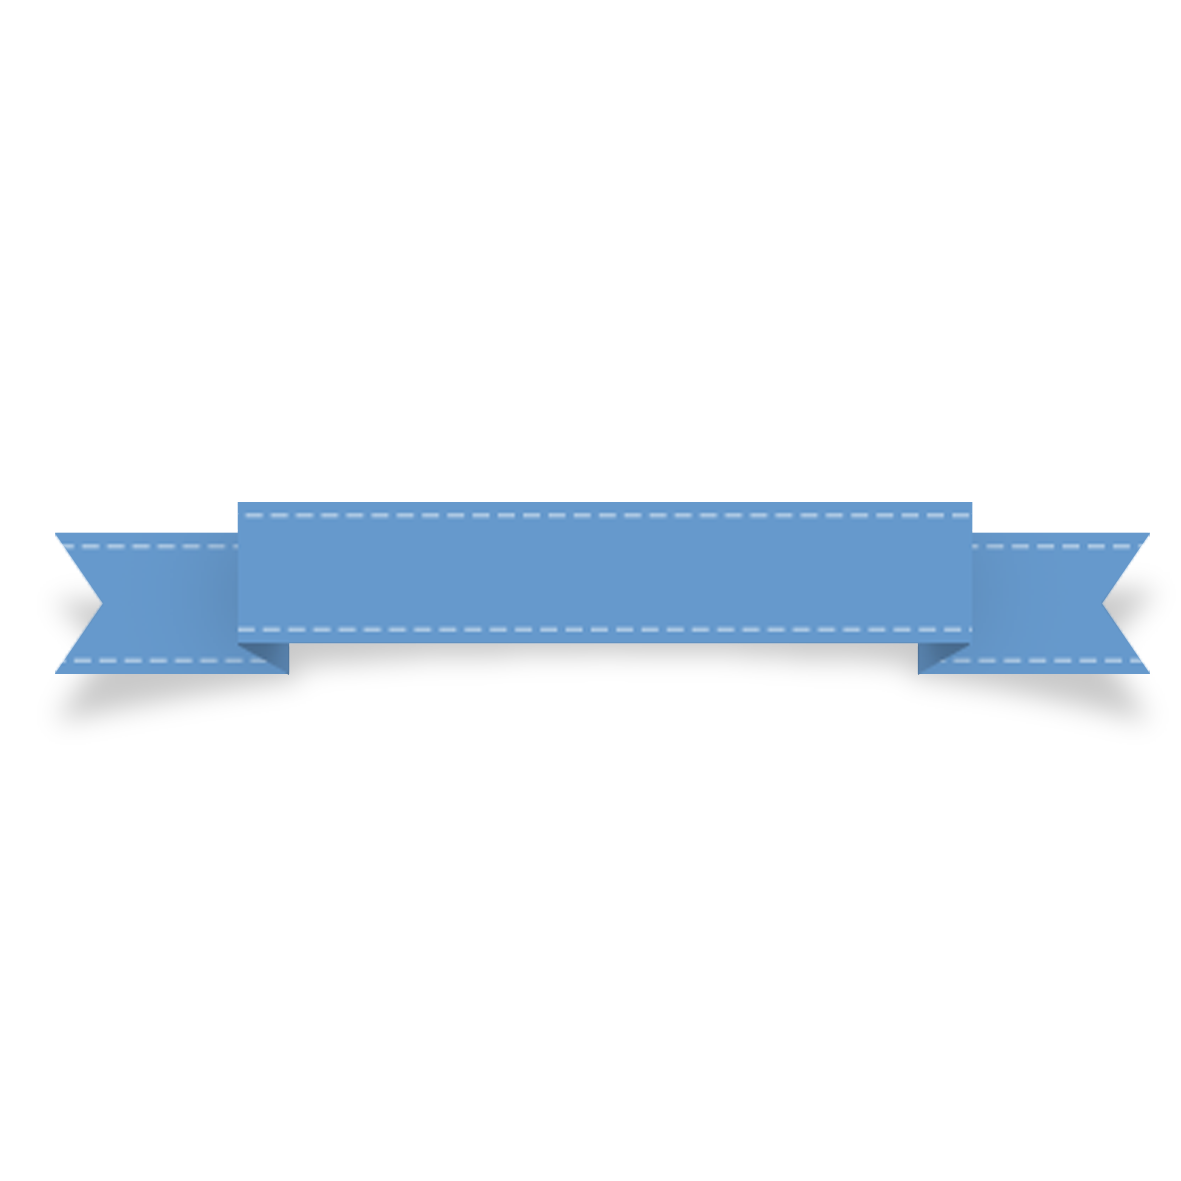 Blue Upgrade Banding Colour Label Ribbon PNG Image